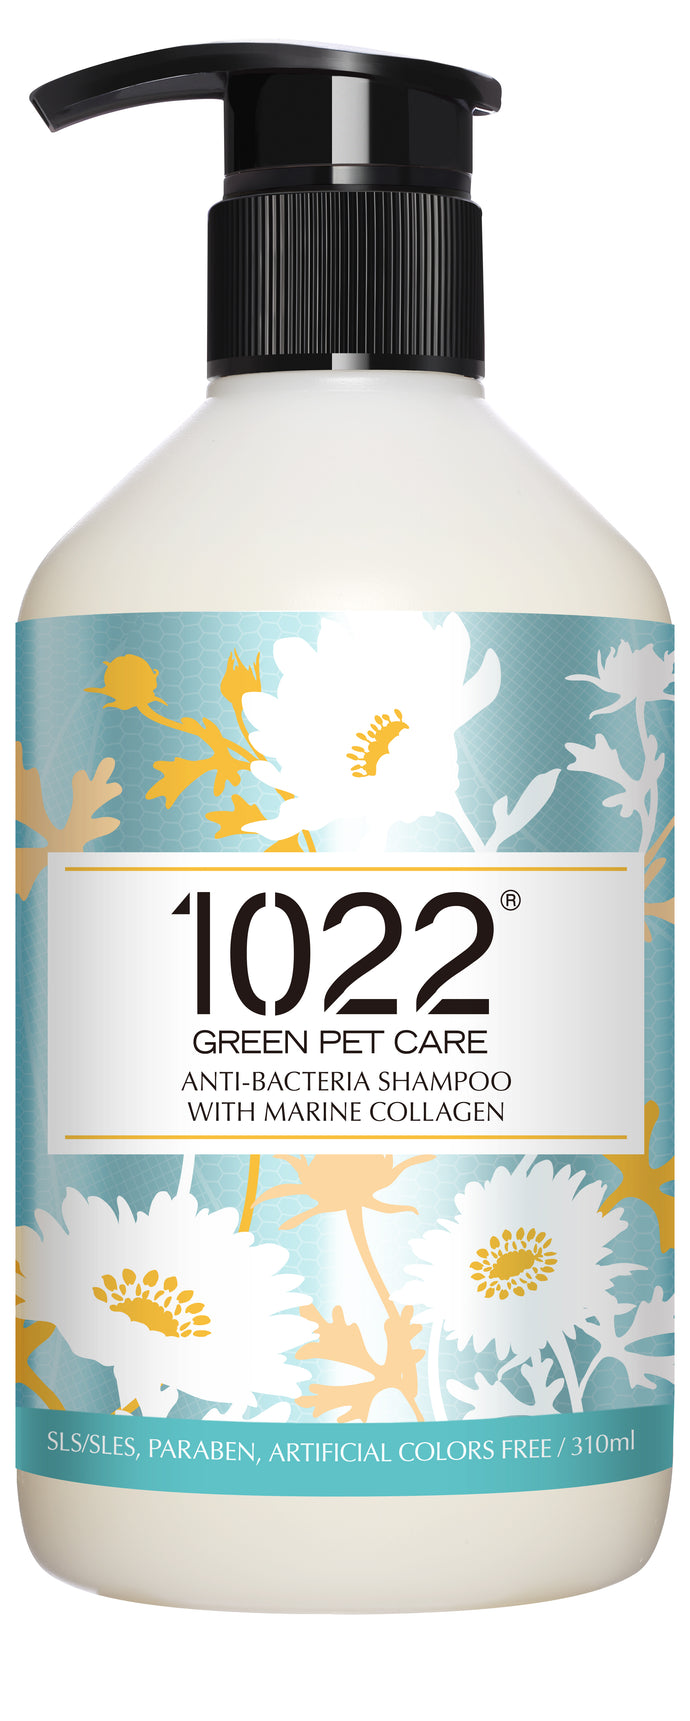 1022 Green Pet Care Anti-Bacteria Shampoo For Dogs (2 Sizes)